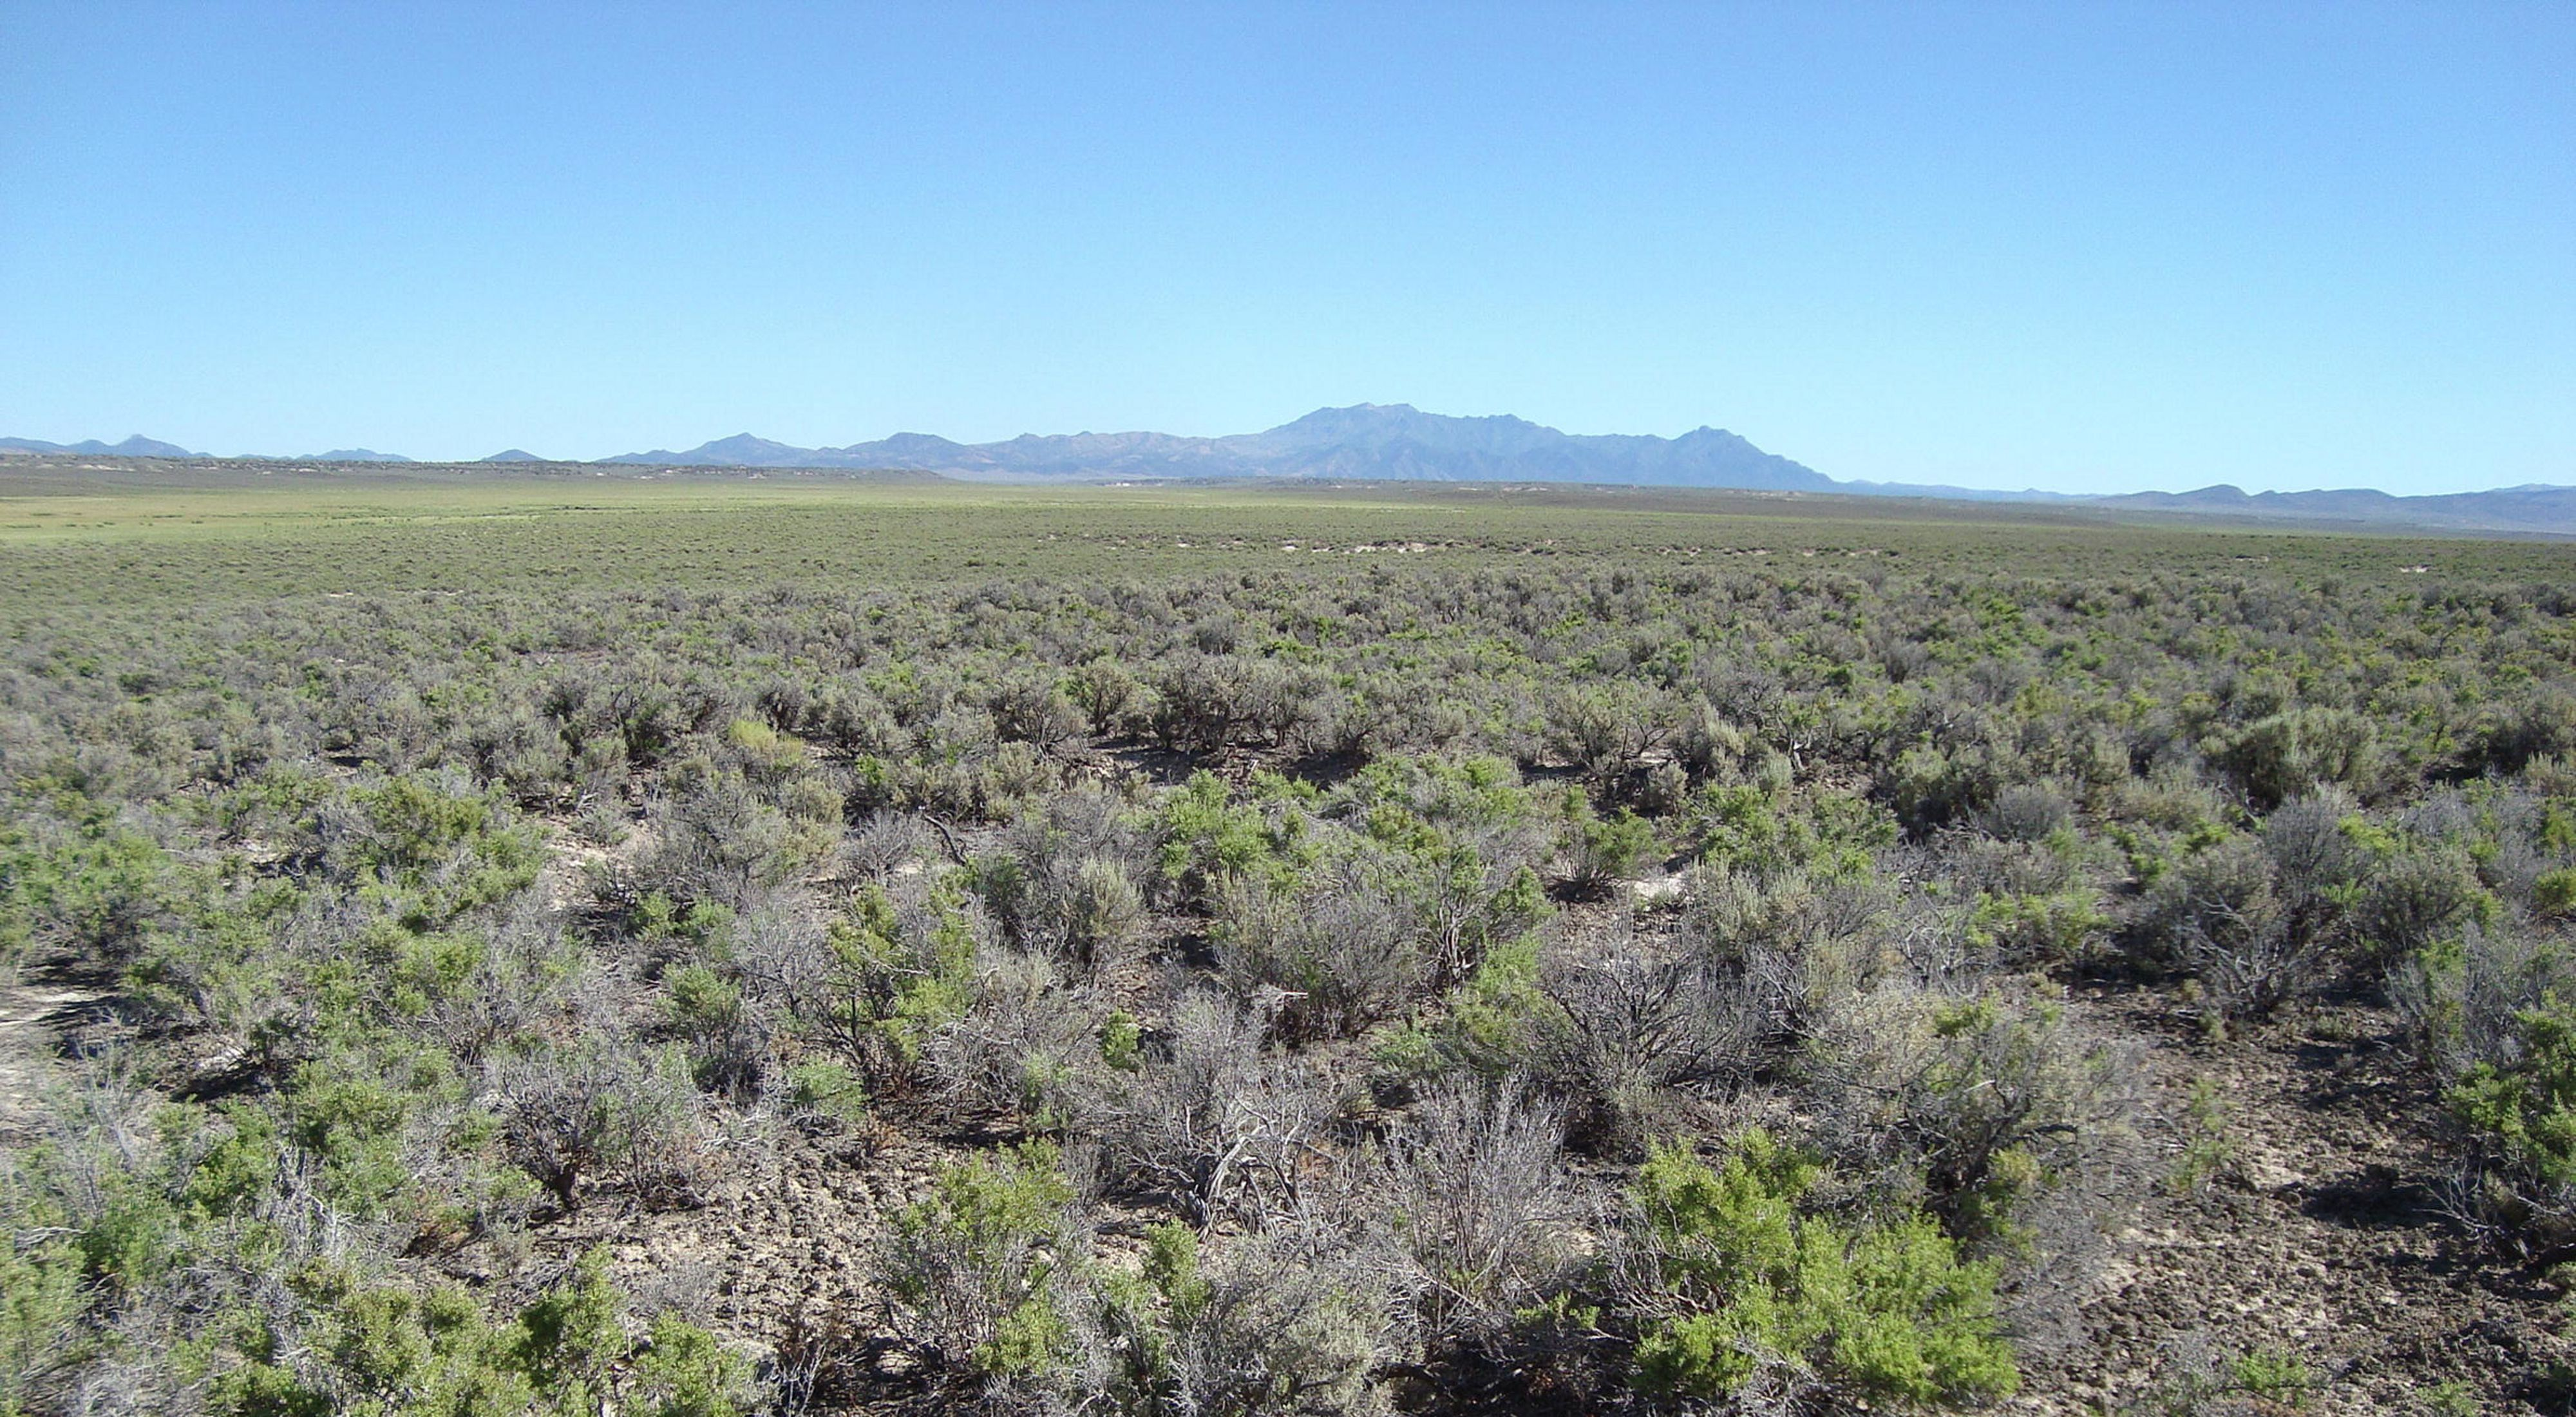 Greasewood ecosystem in Pine Valley, Nevada with the Roberts Mountains in the background.